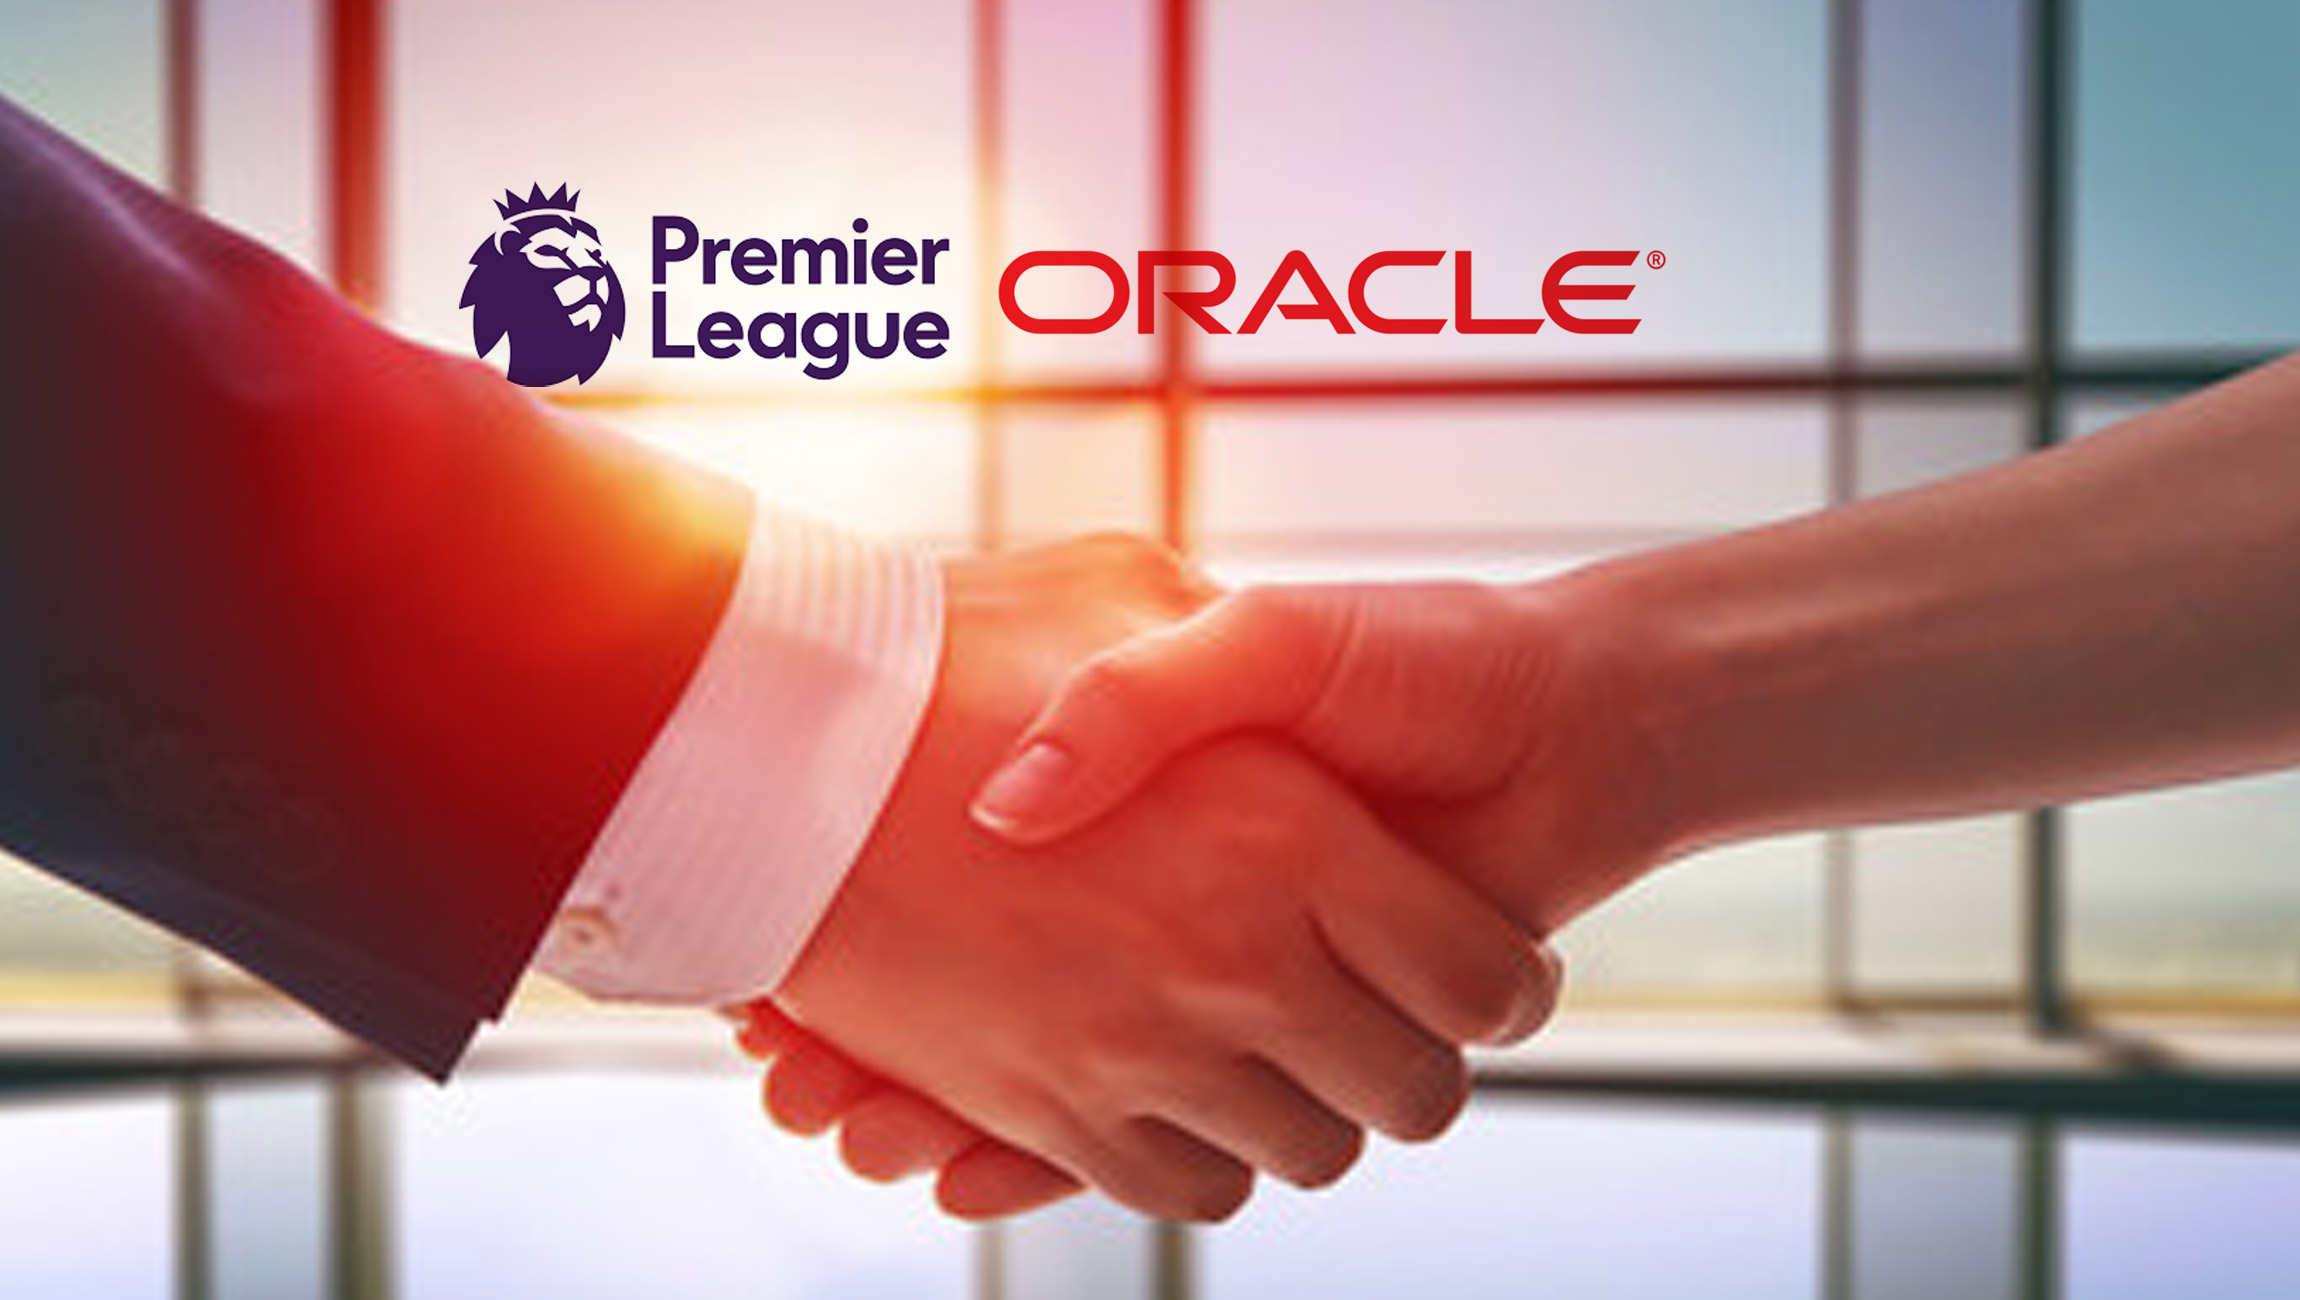 Premier League Selects Oracle Cloud Infrastructure to Power New Advanced Football Analytics